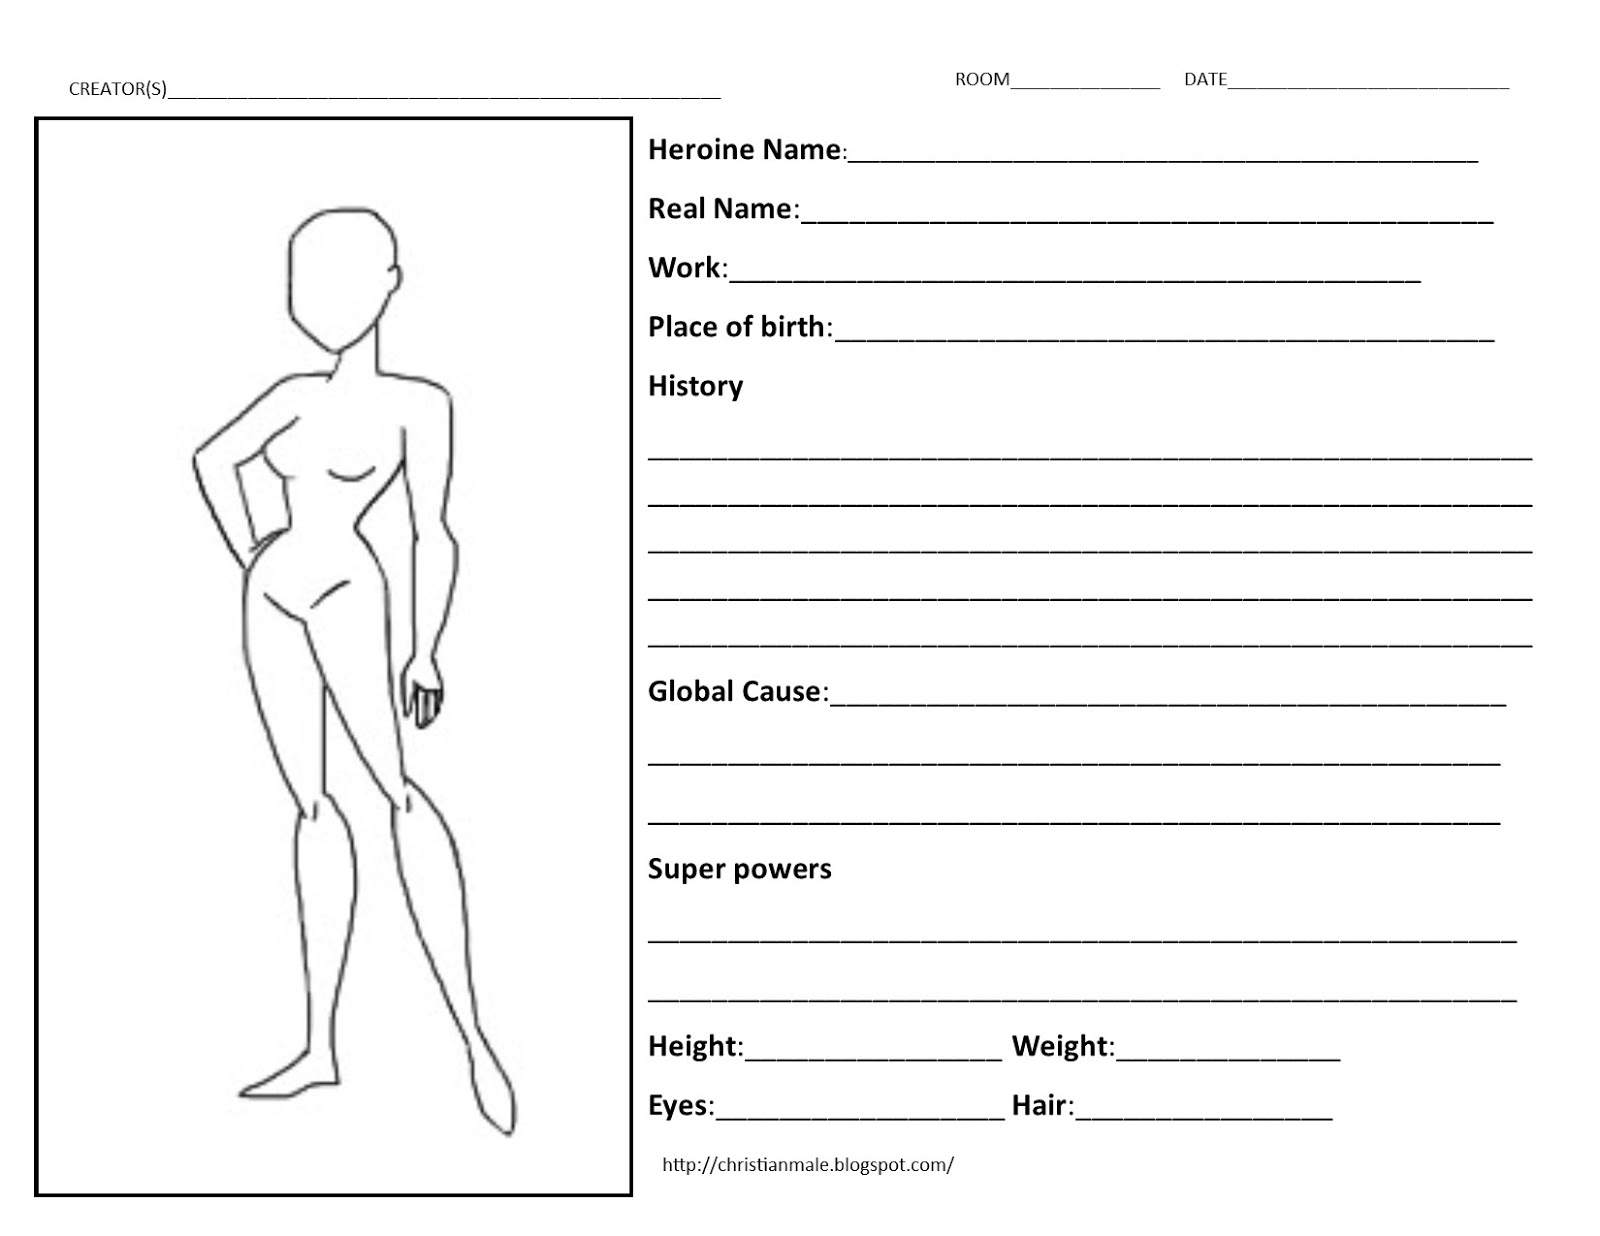 Worksheets Character Profile Worksheet character profile sheet etame mibawa co sheet